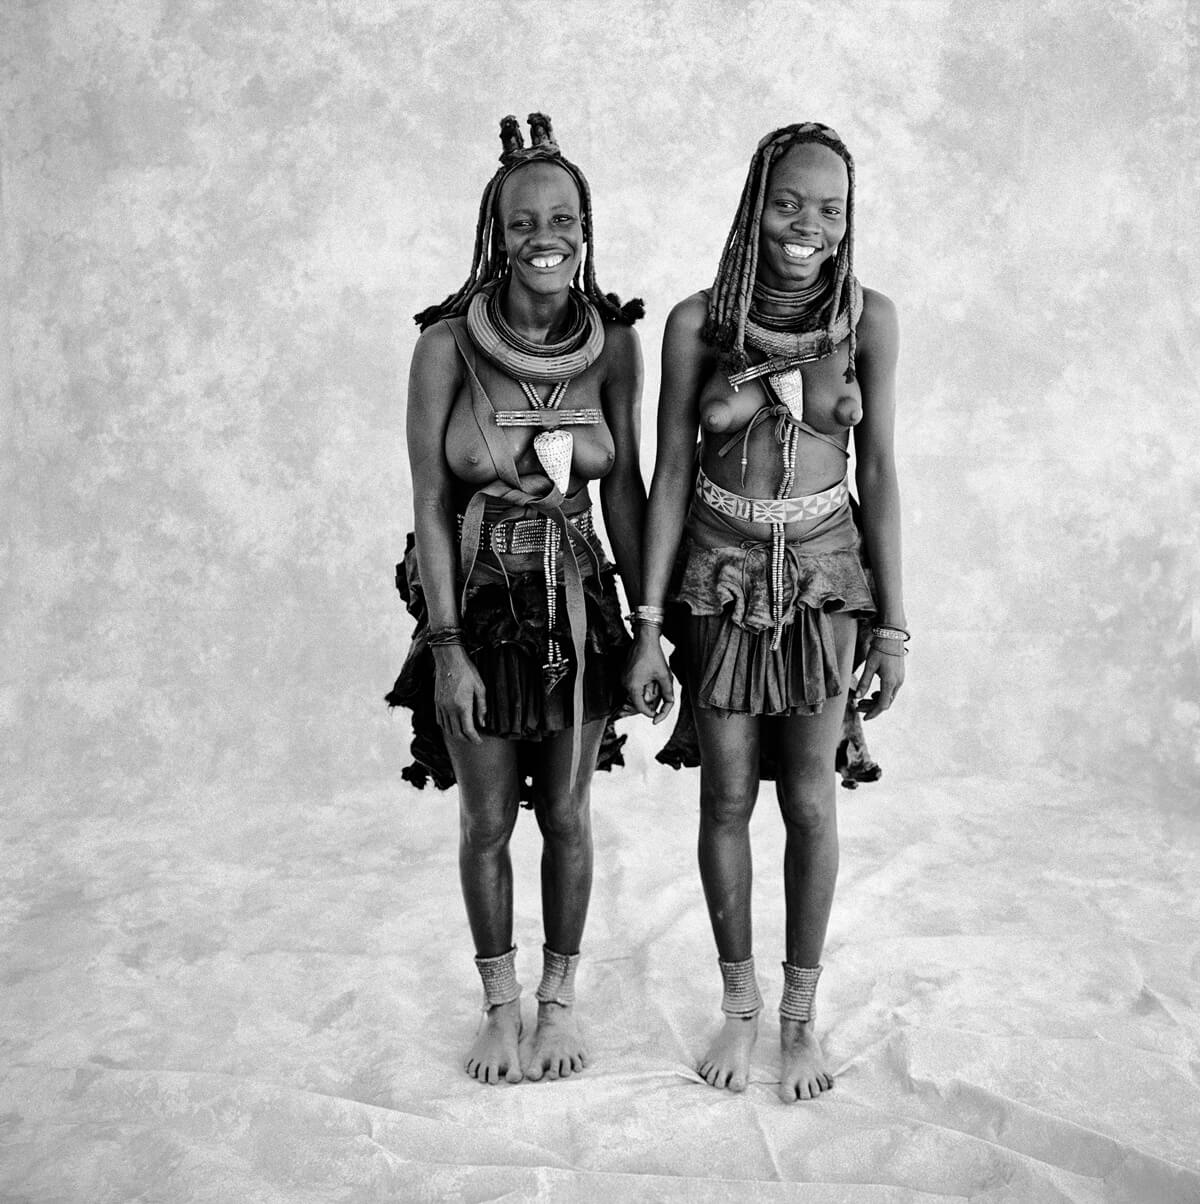 Harry De Zitter The Himba Collection 1997